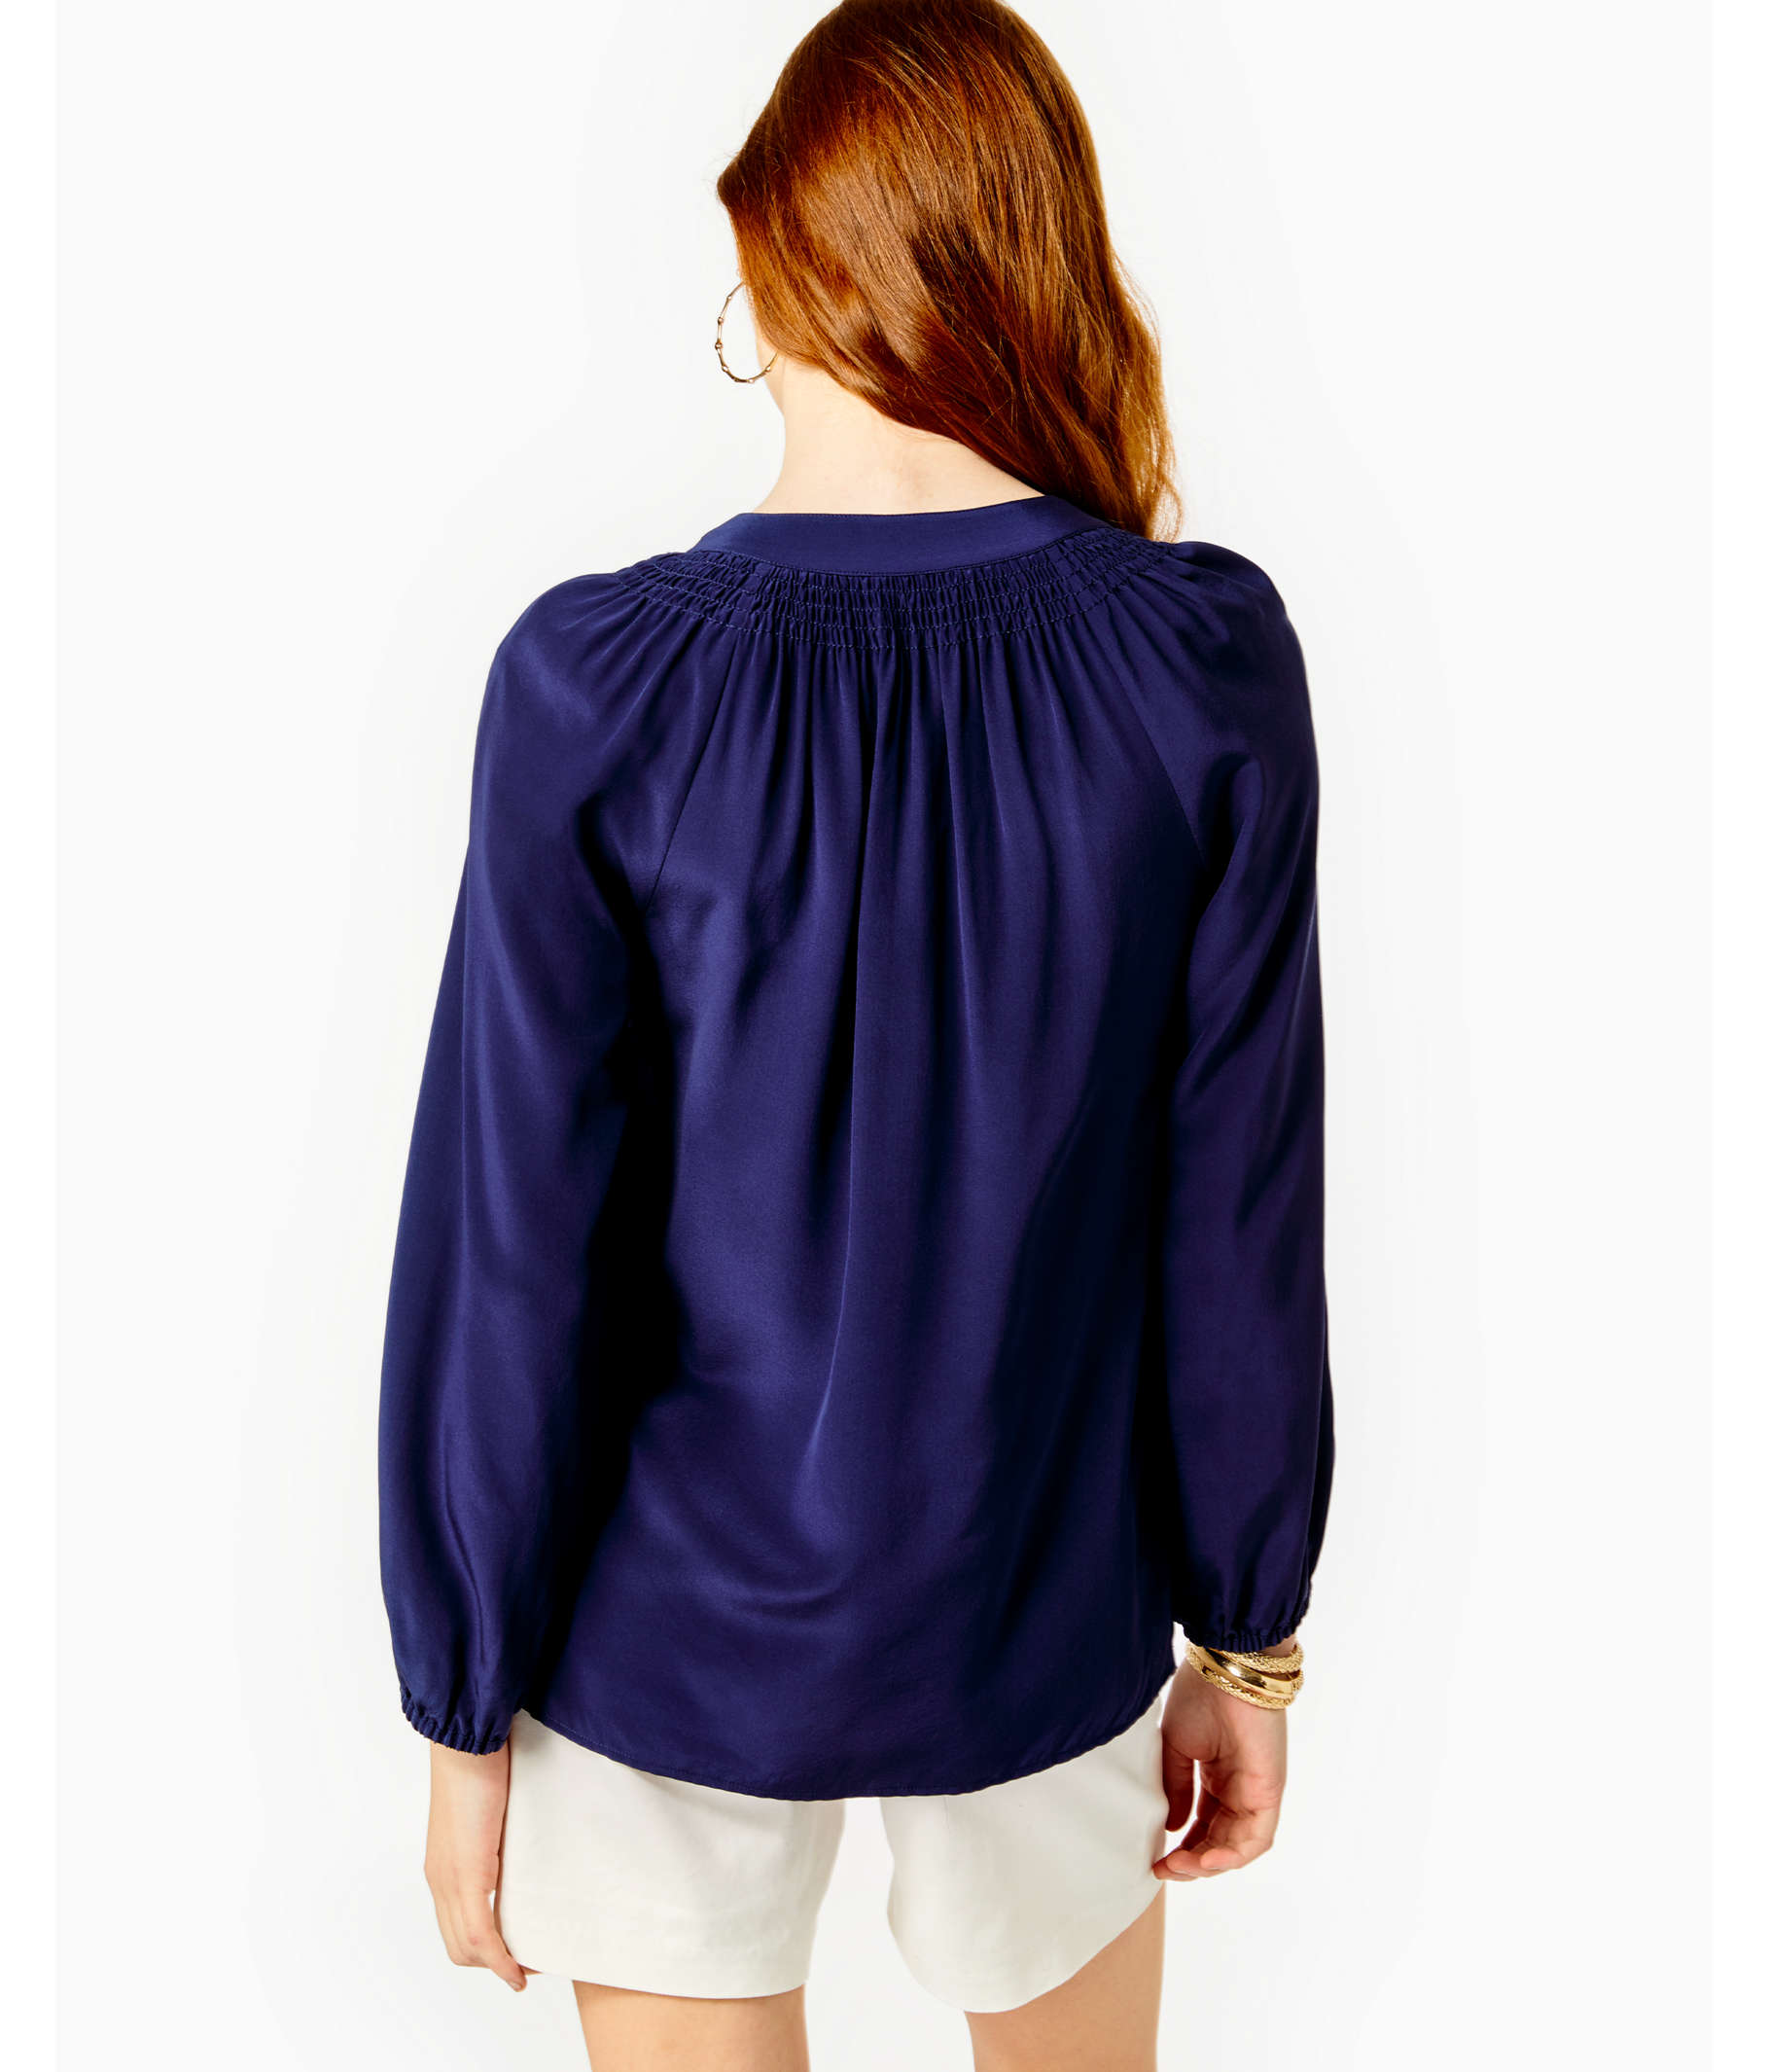 Navy Silk Blouse With Bow Coolmine Community School